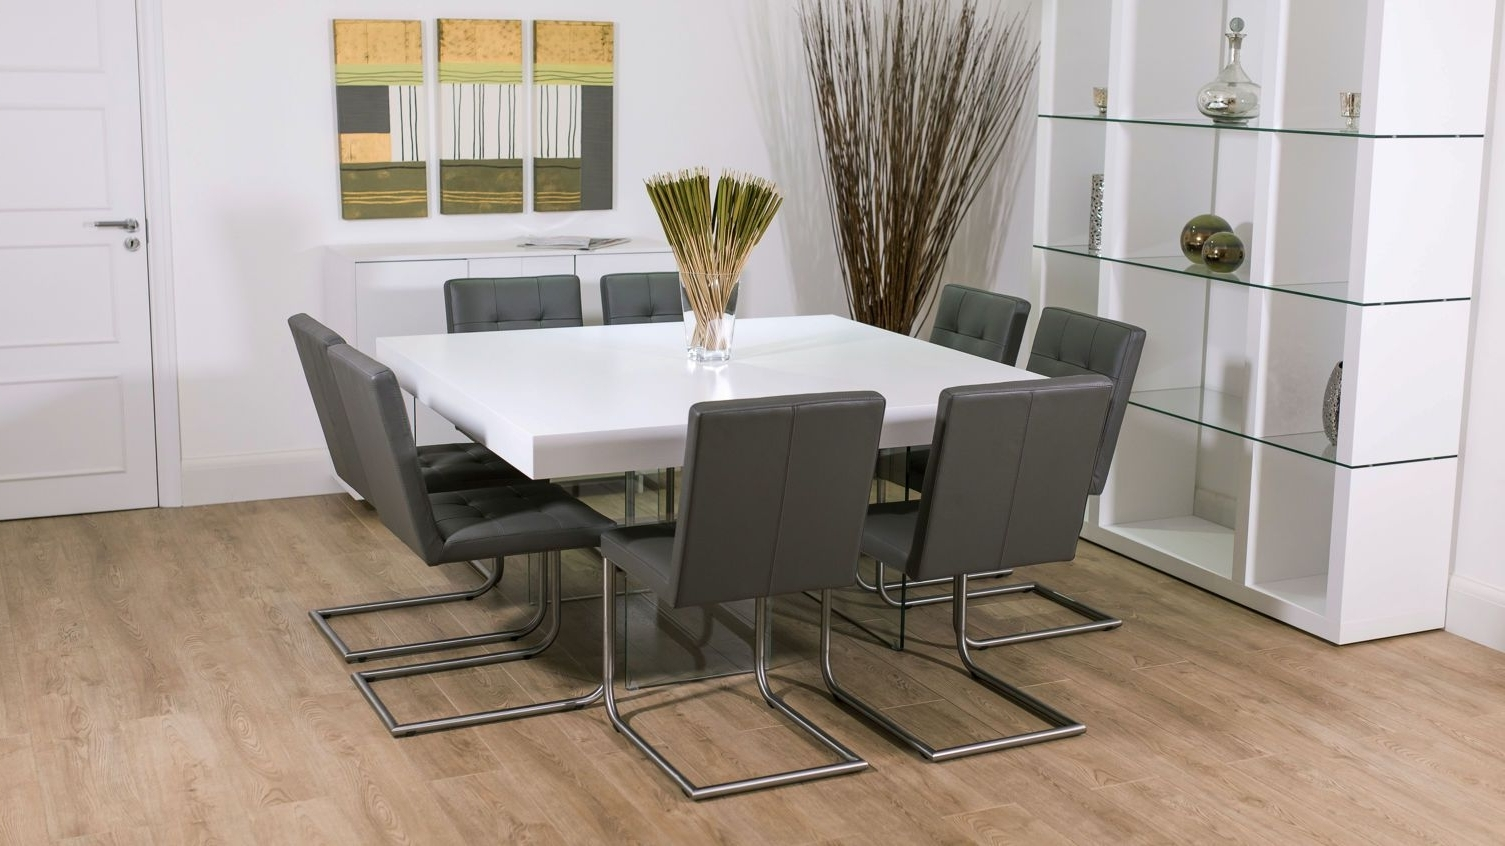 2018 Dining Tables With 8 Seater Within 8 Seater Square Glass Dining Table (View 19 of 25)